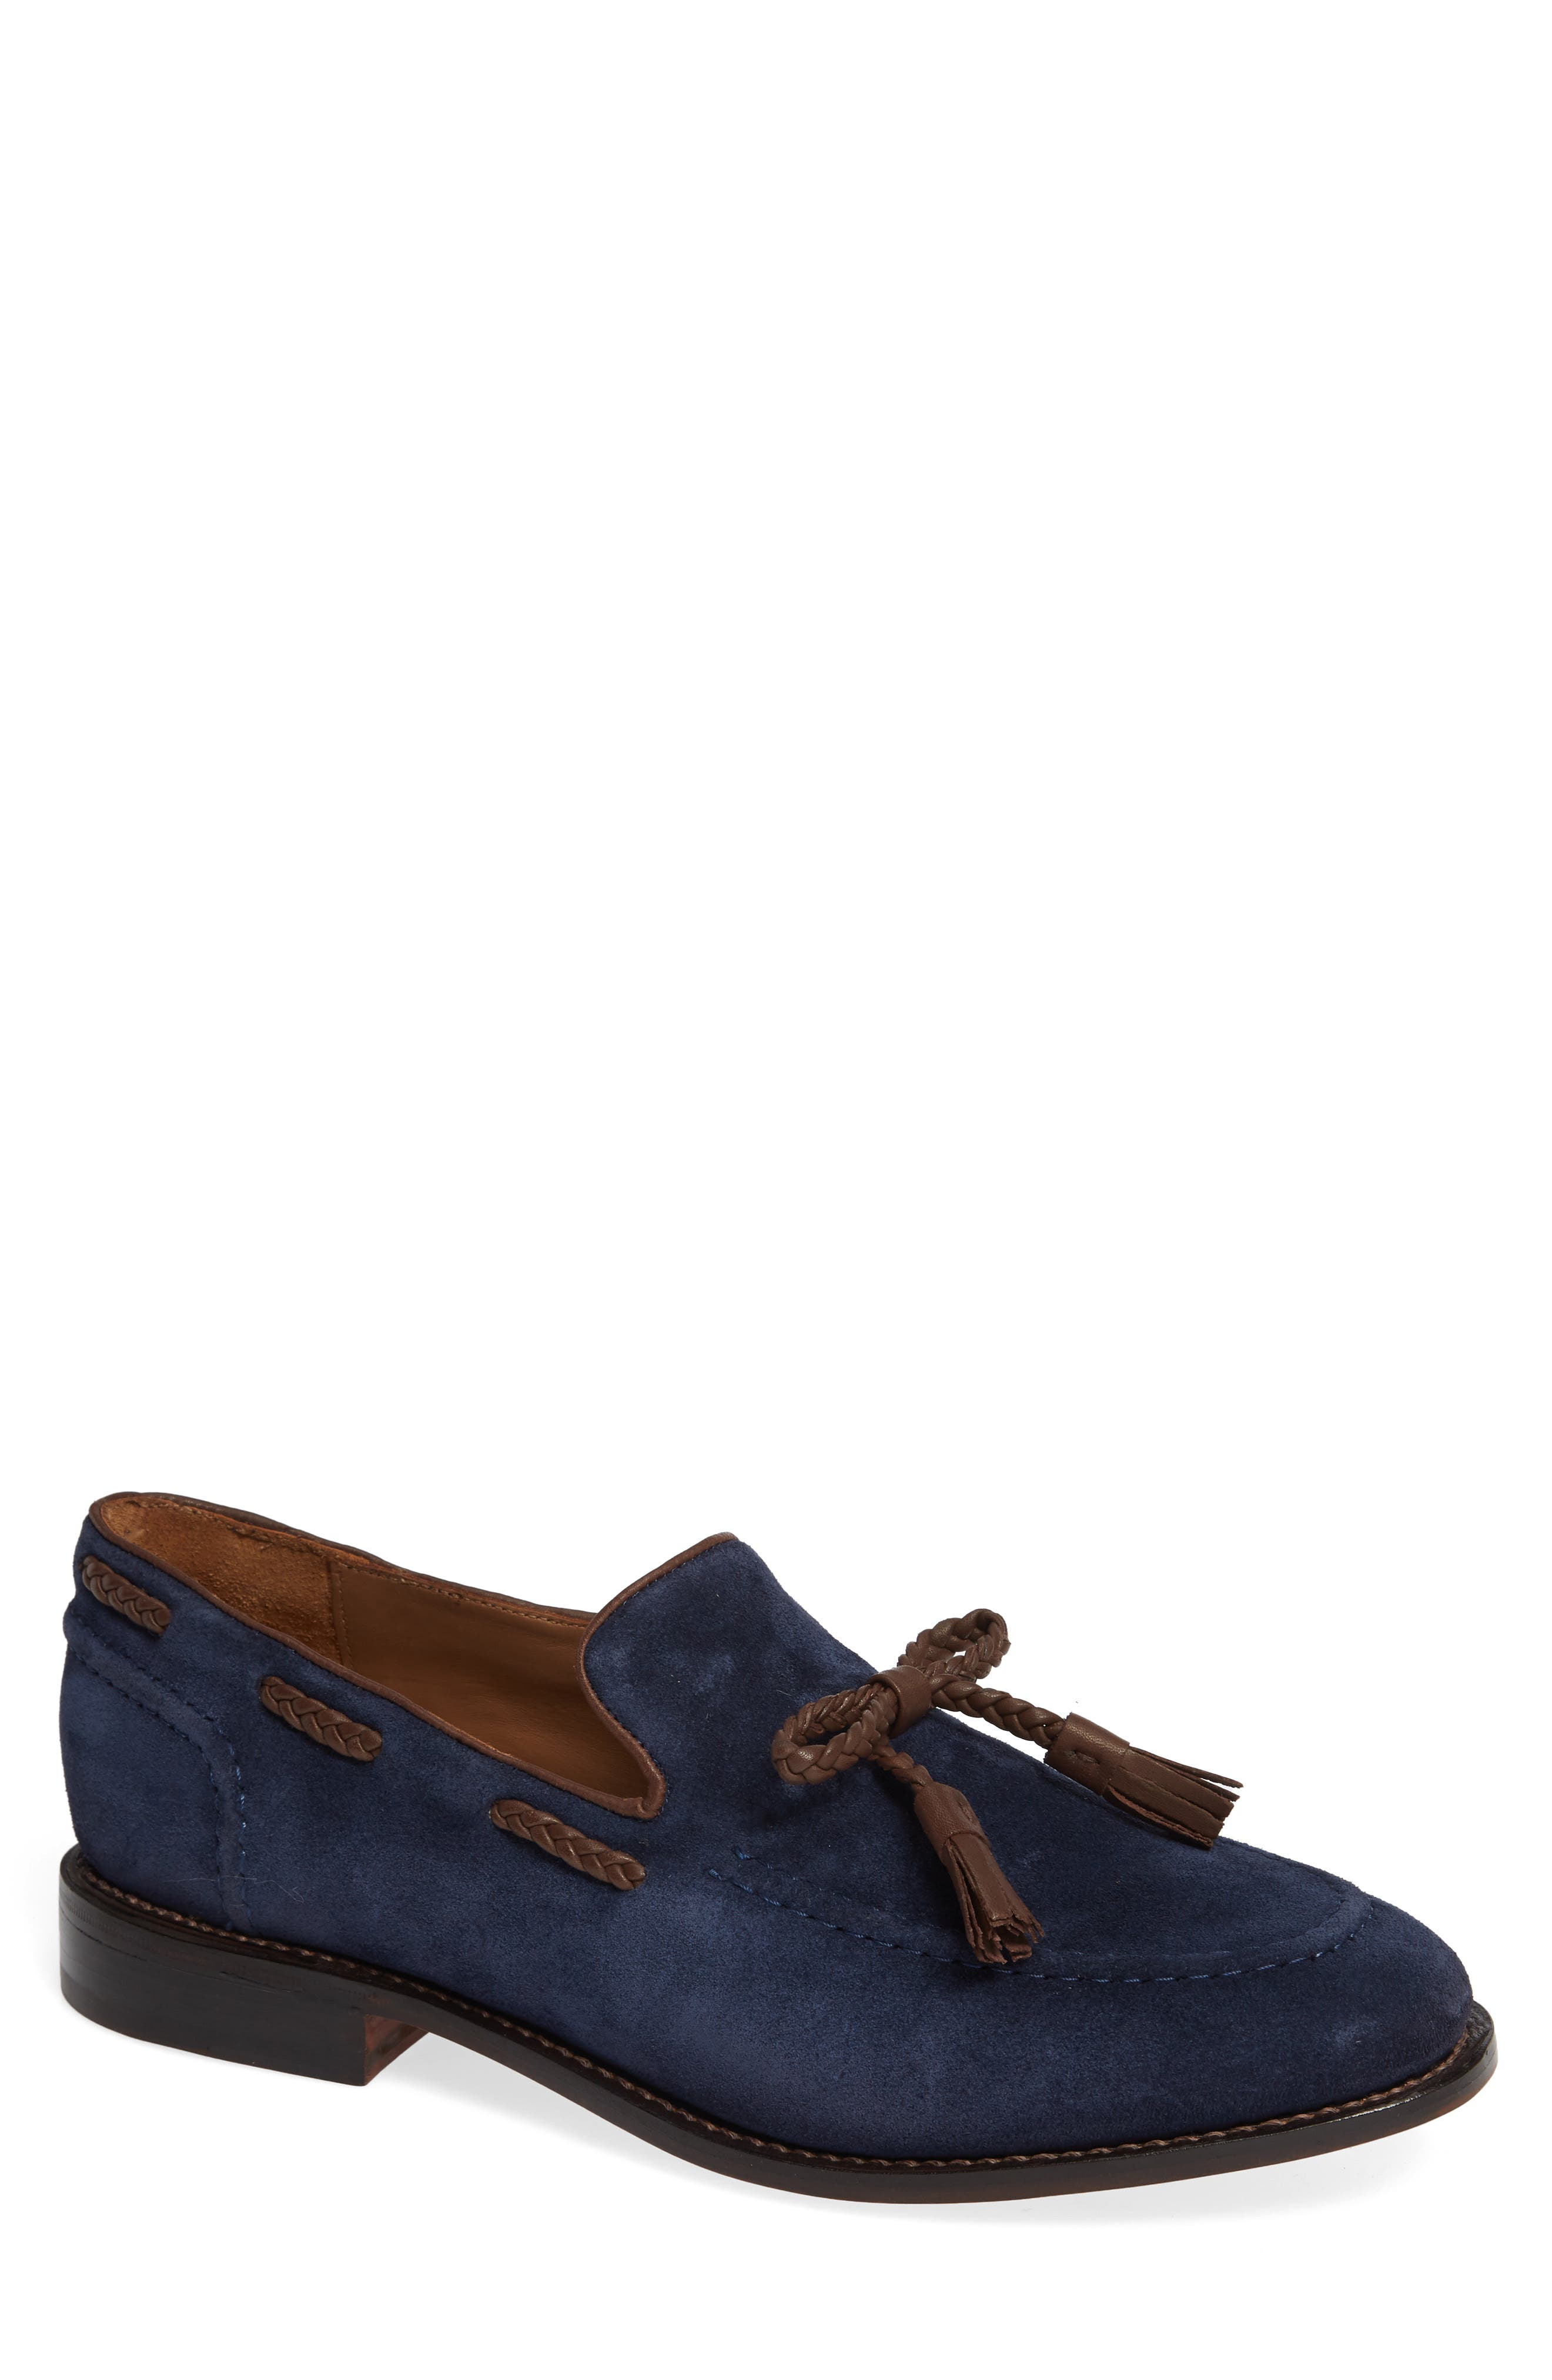 Braided Tassel Loafer,                             Main thumbnail 1, color,                             NAVY SUEDE